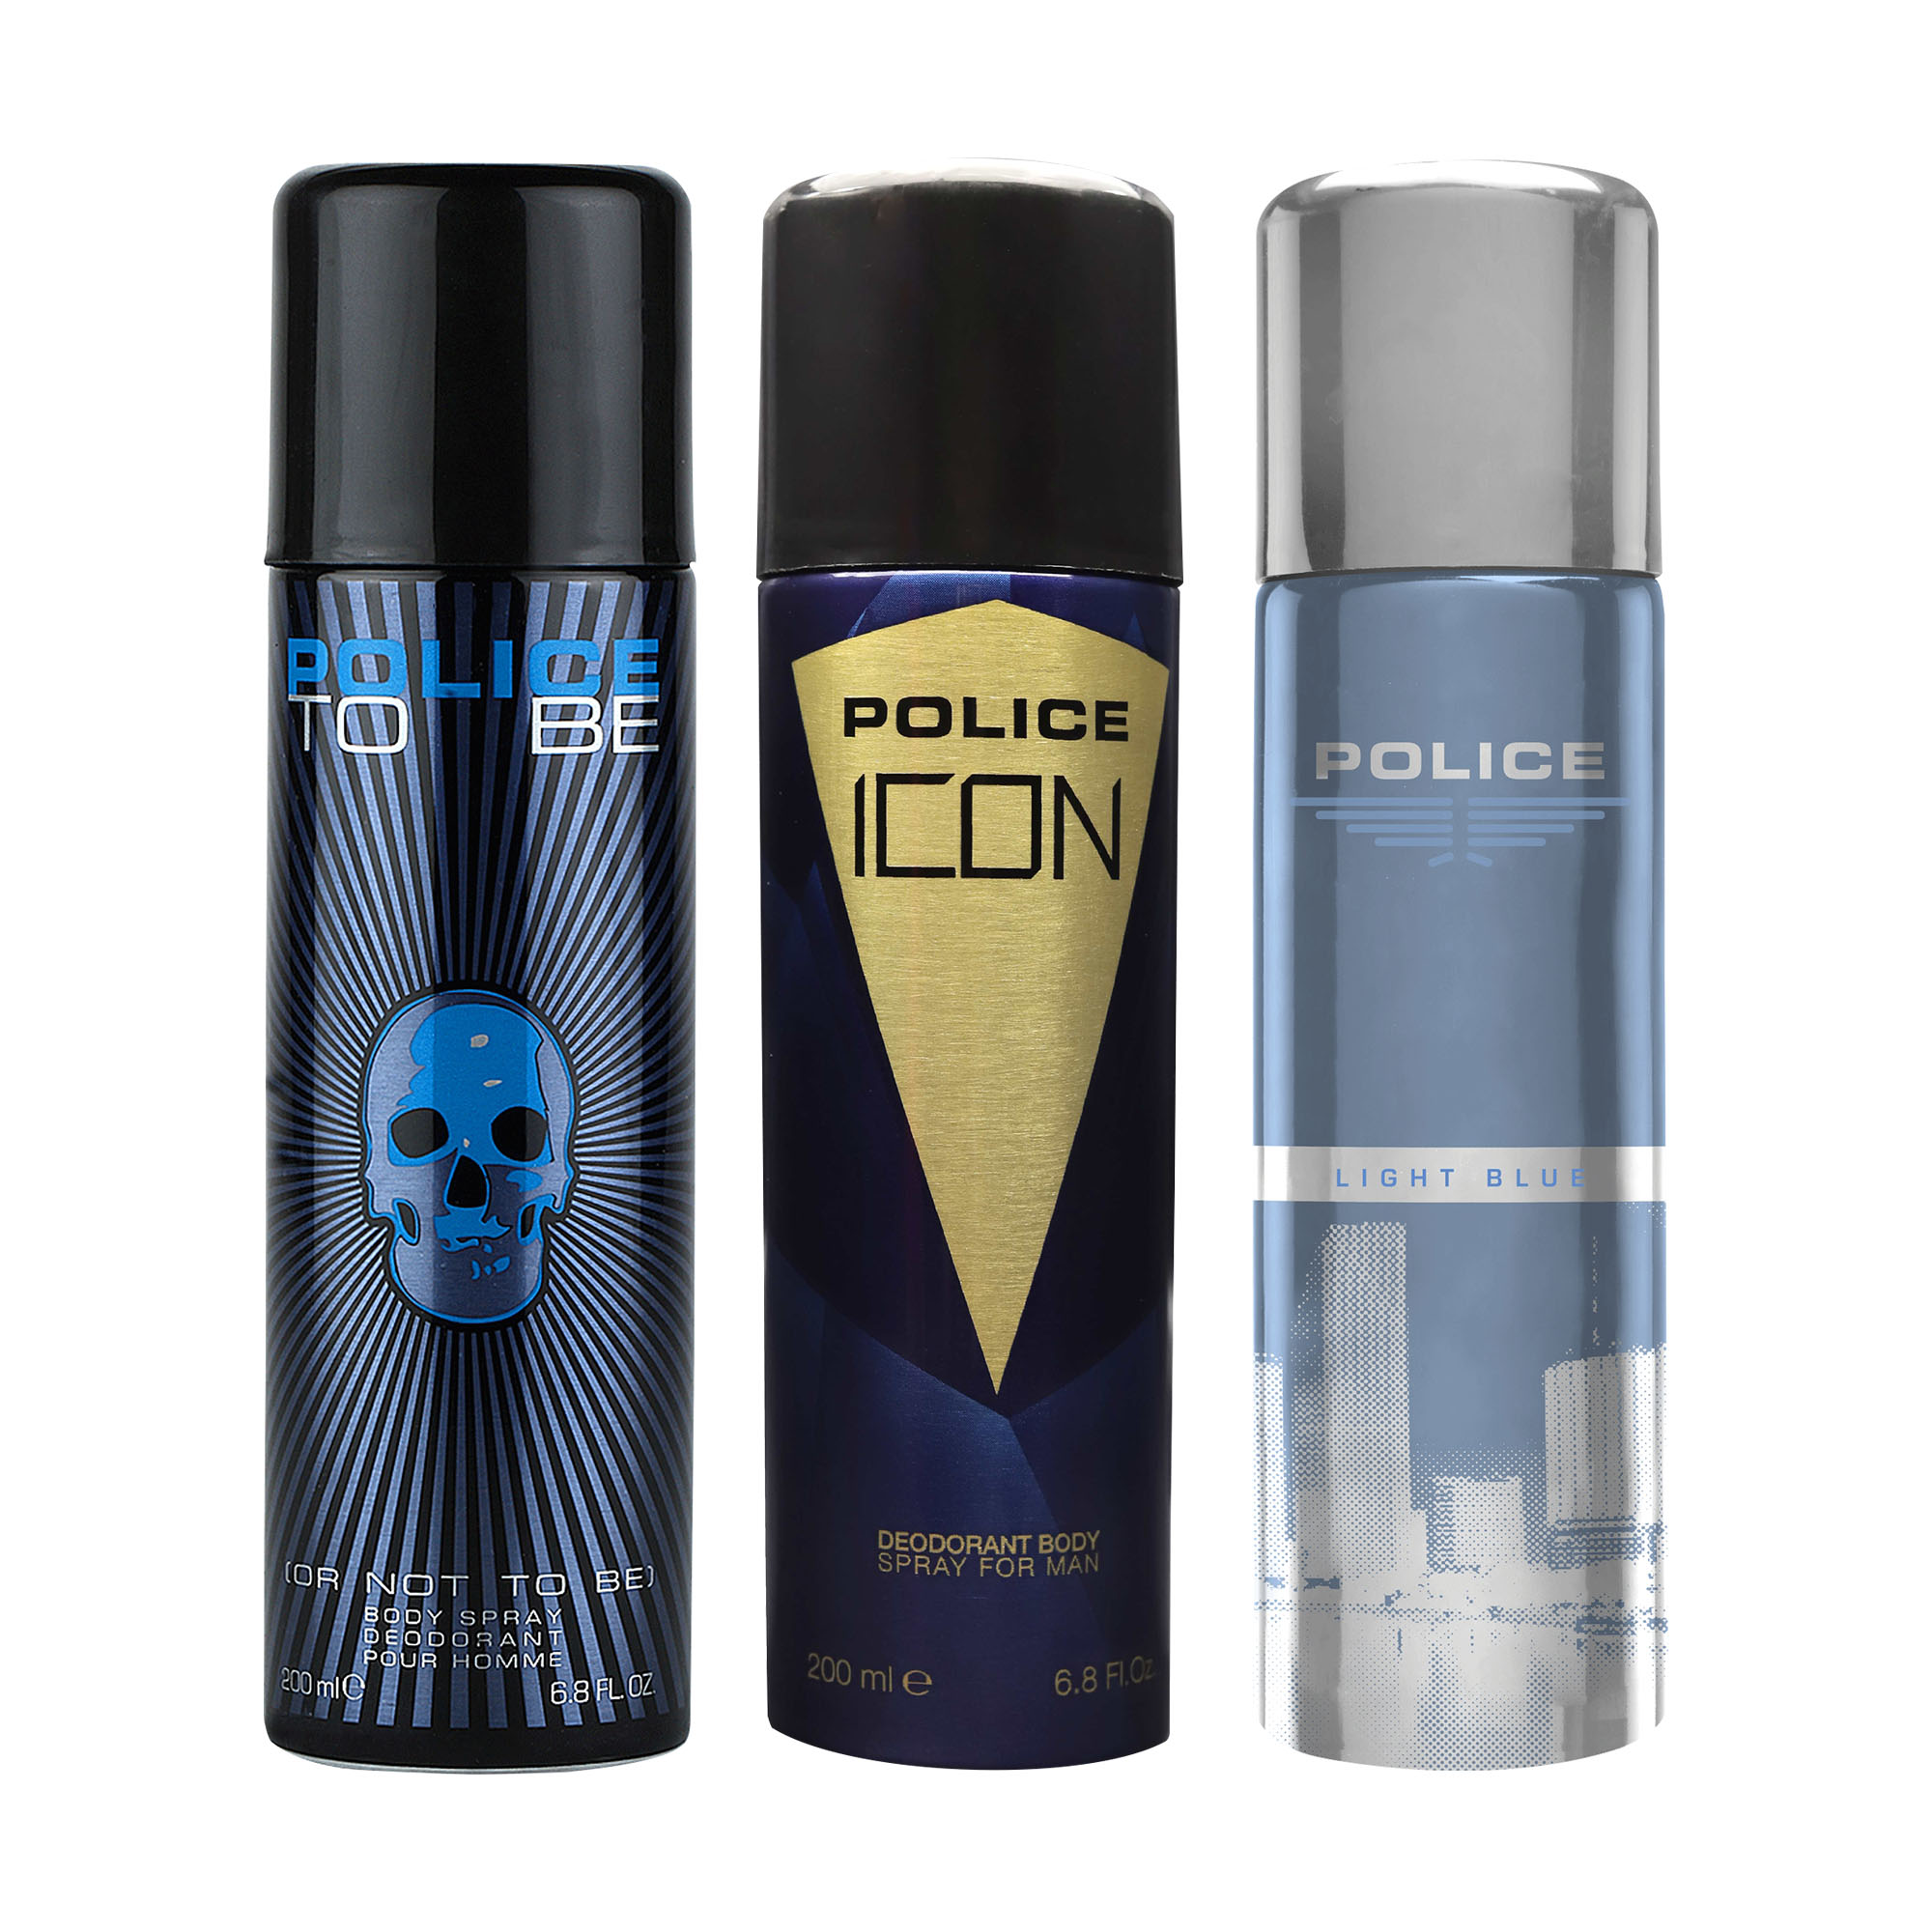 POLICE | To Be Men and Icon and Light Blue Deodorant Spray - For Men 600 ML